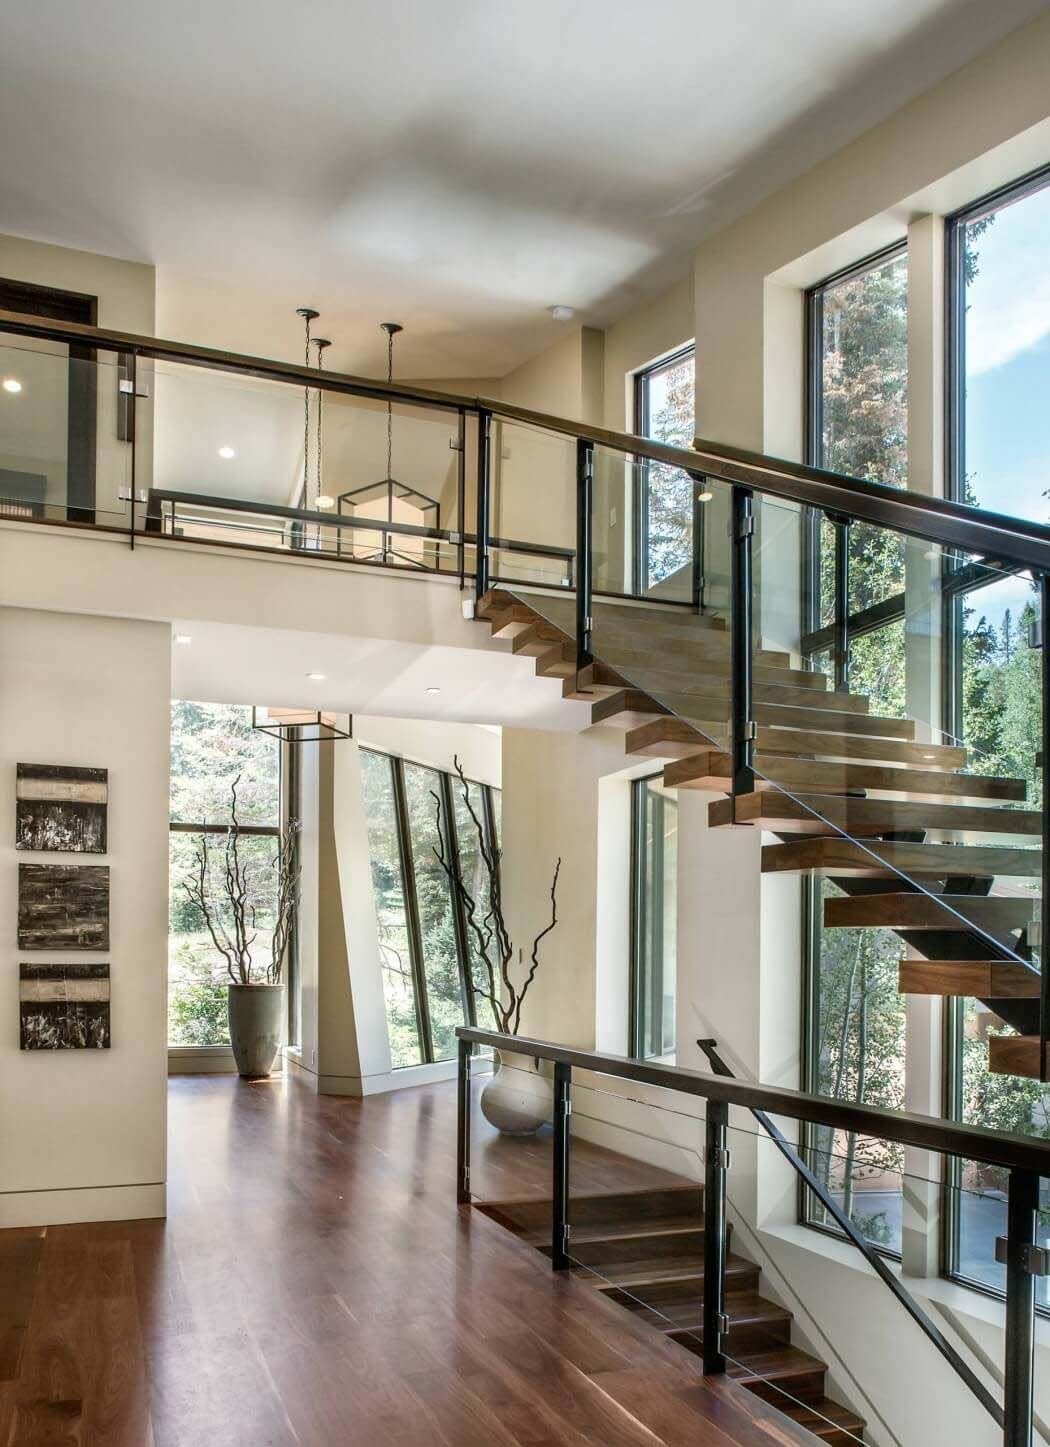 Spectacular modern mountain home in Park City  Utah   Foyers and     This remarkable modern mountain home was designed by Upwall Design along  with LMK Interior Design in The Colony at White Pine Canyon in Park City   Utah